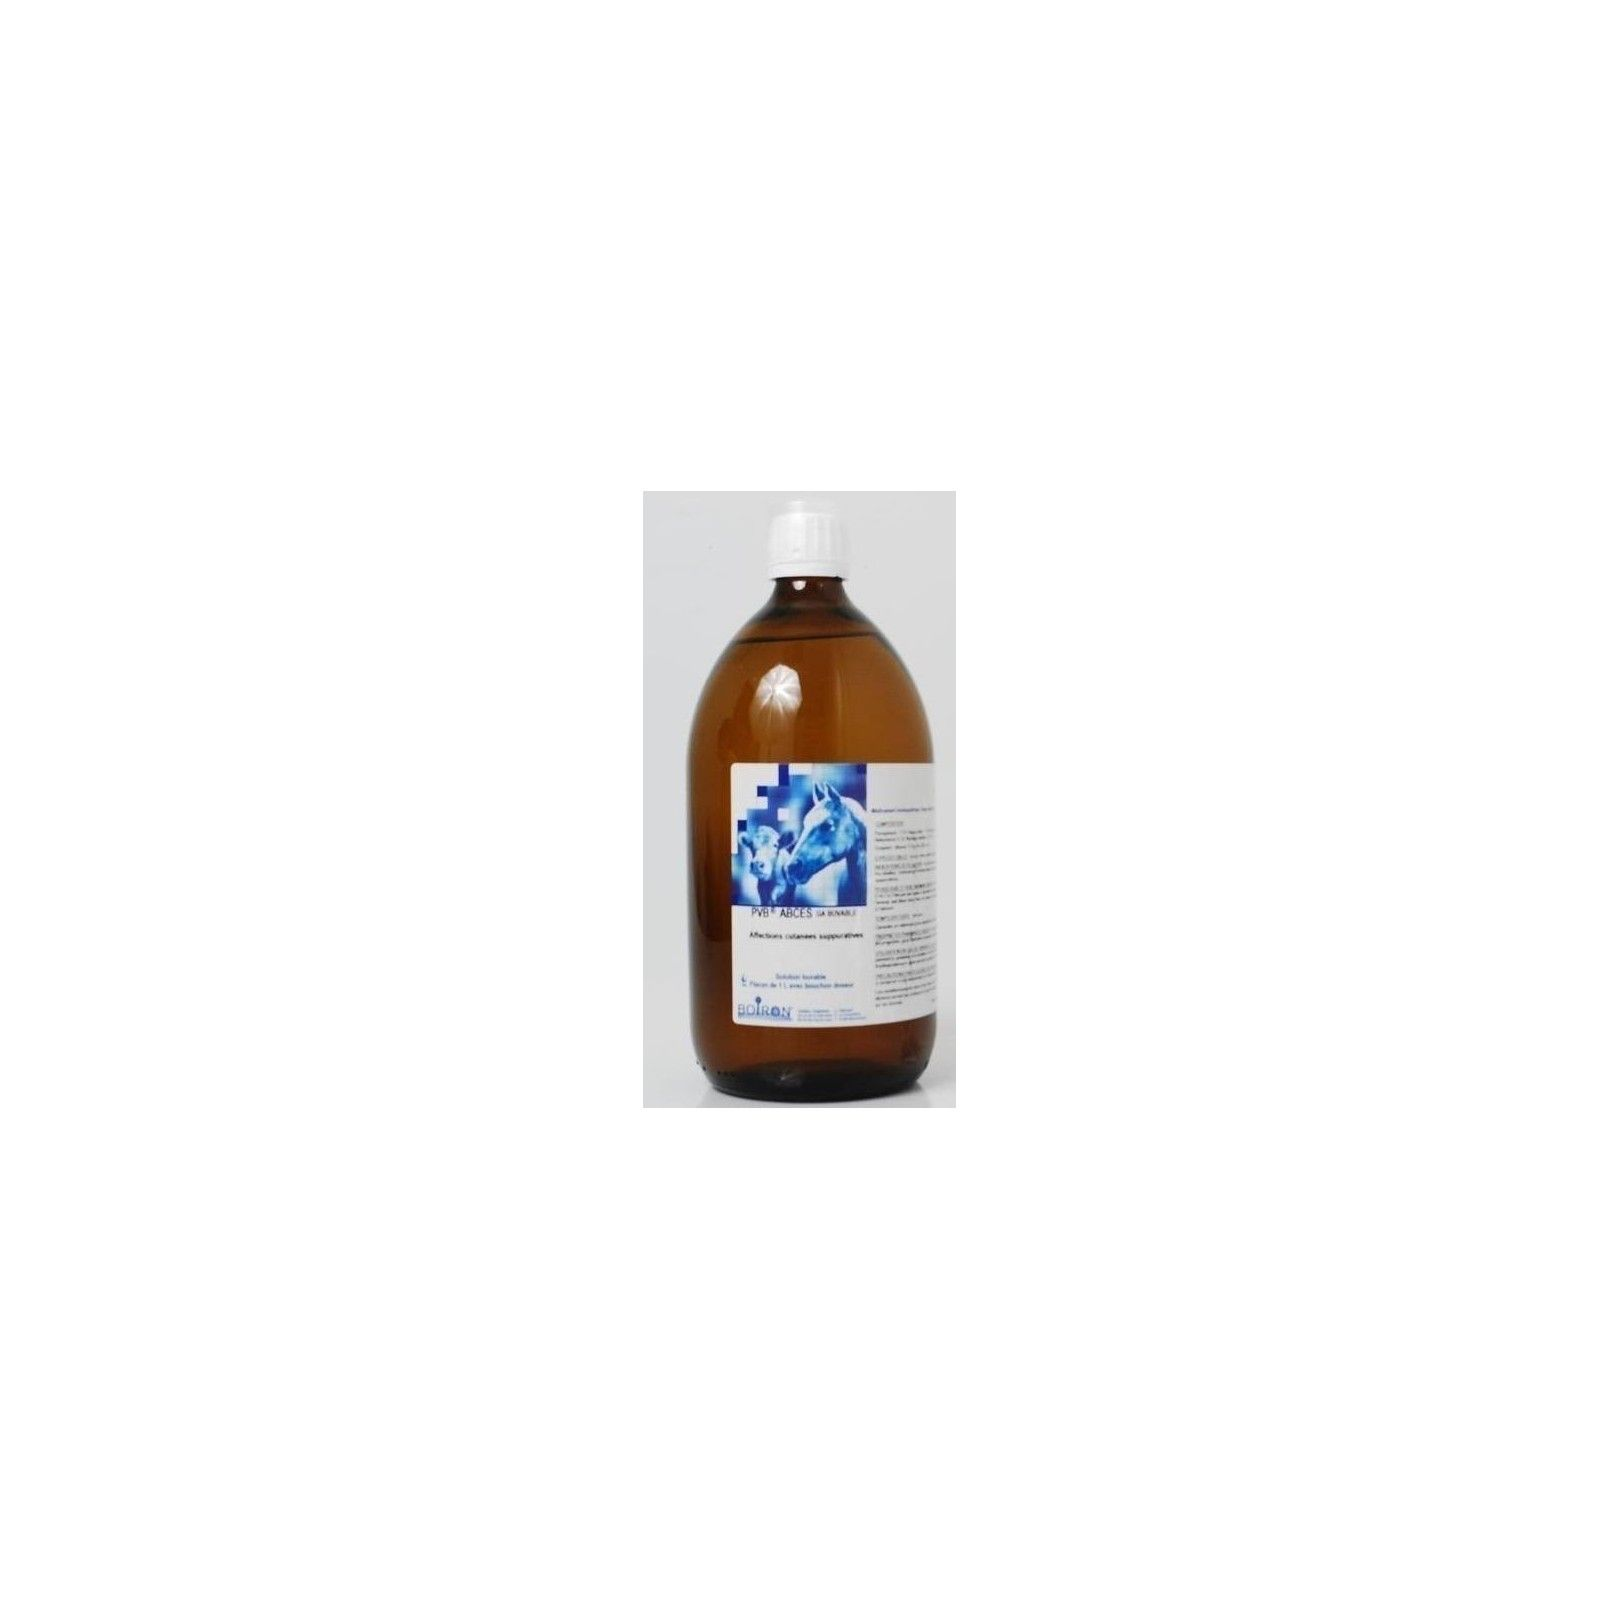 Boiron Tintures-Meres 1L for CA168.05